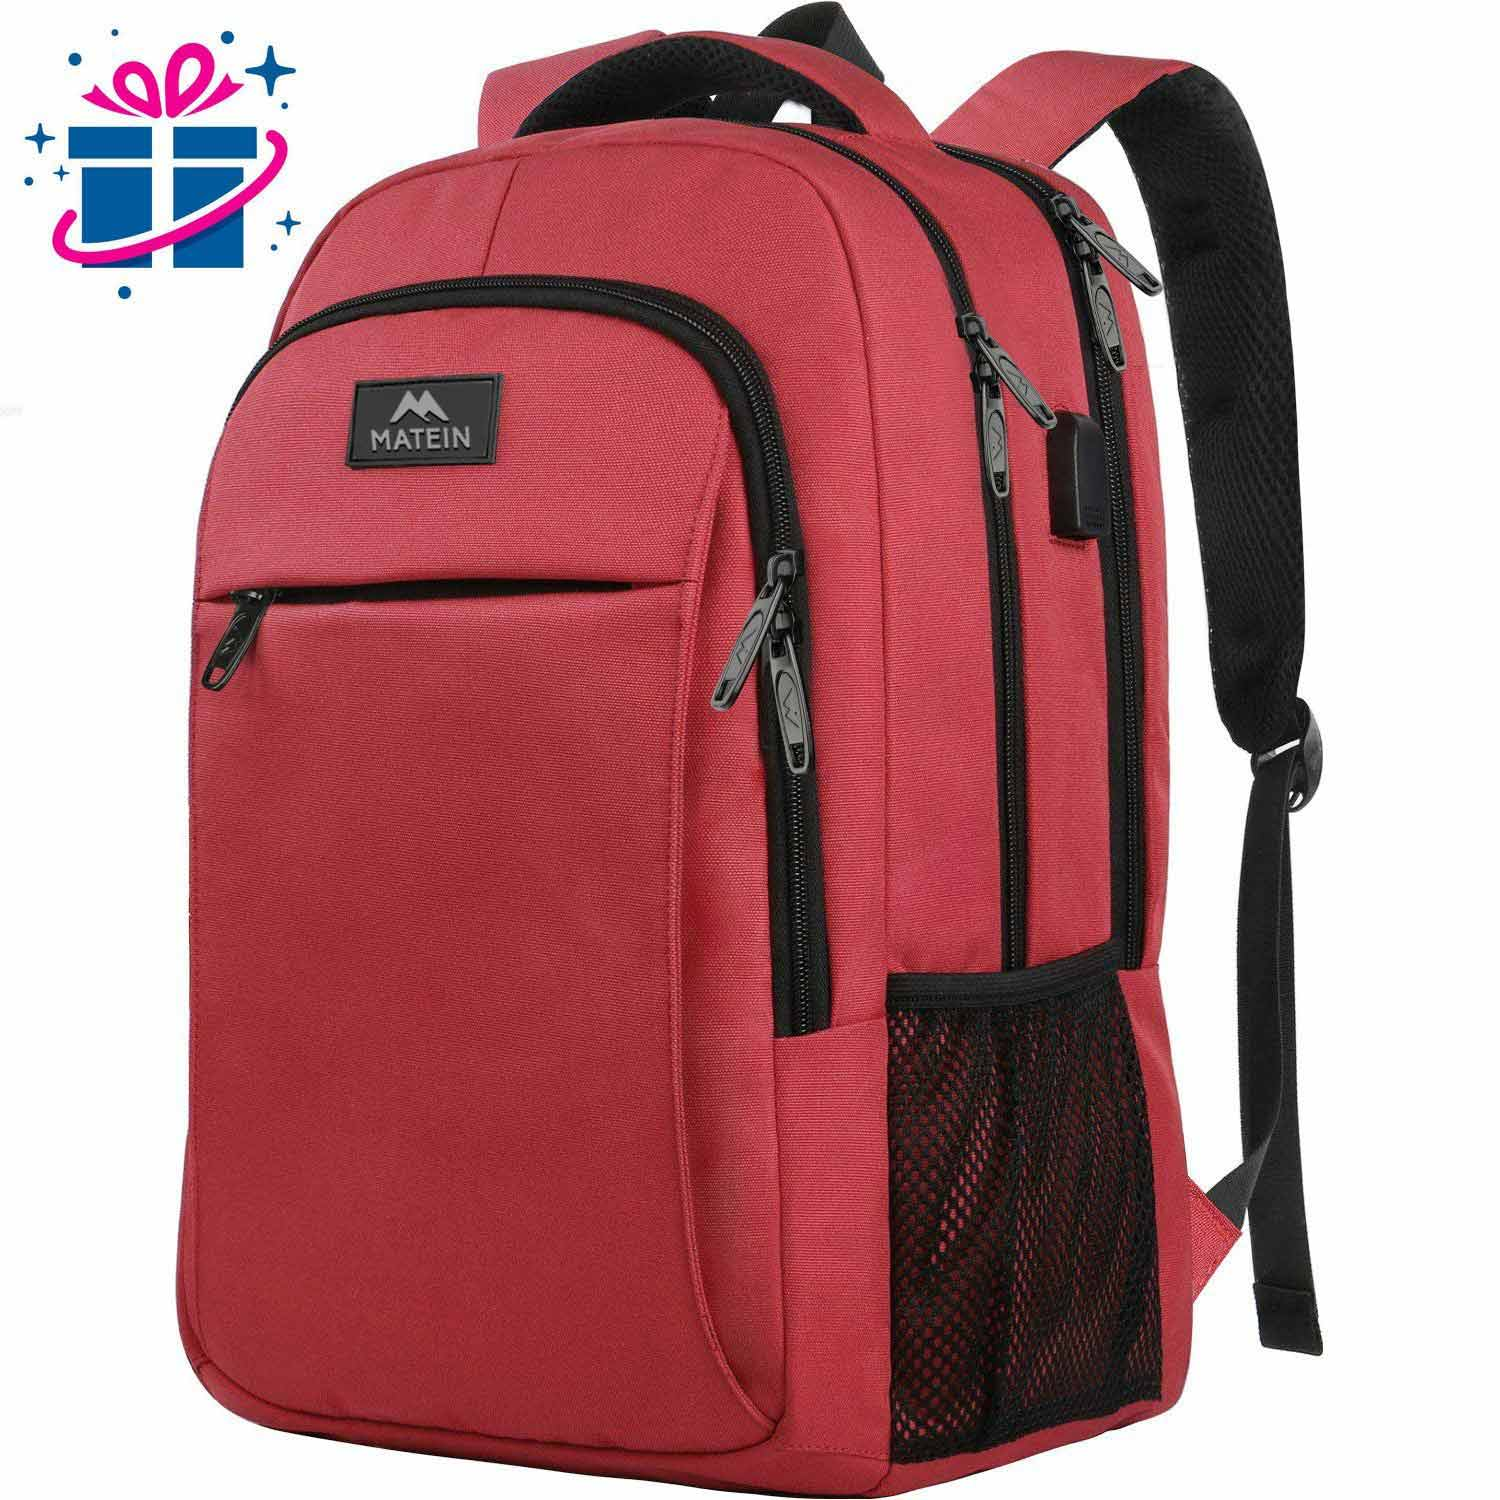 Matein Mlassic Travel Red Laptop Backpack - travel laptop backpack